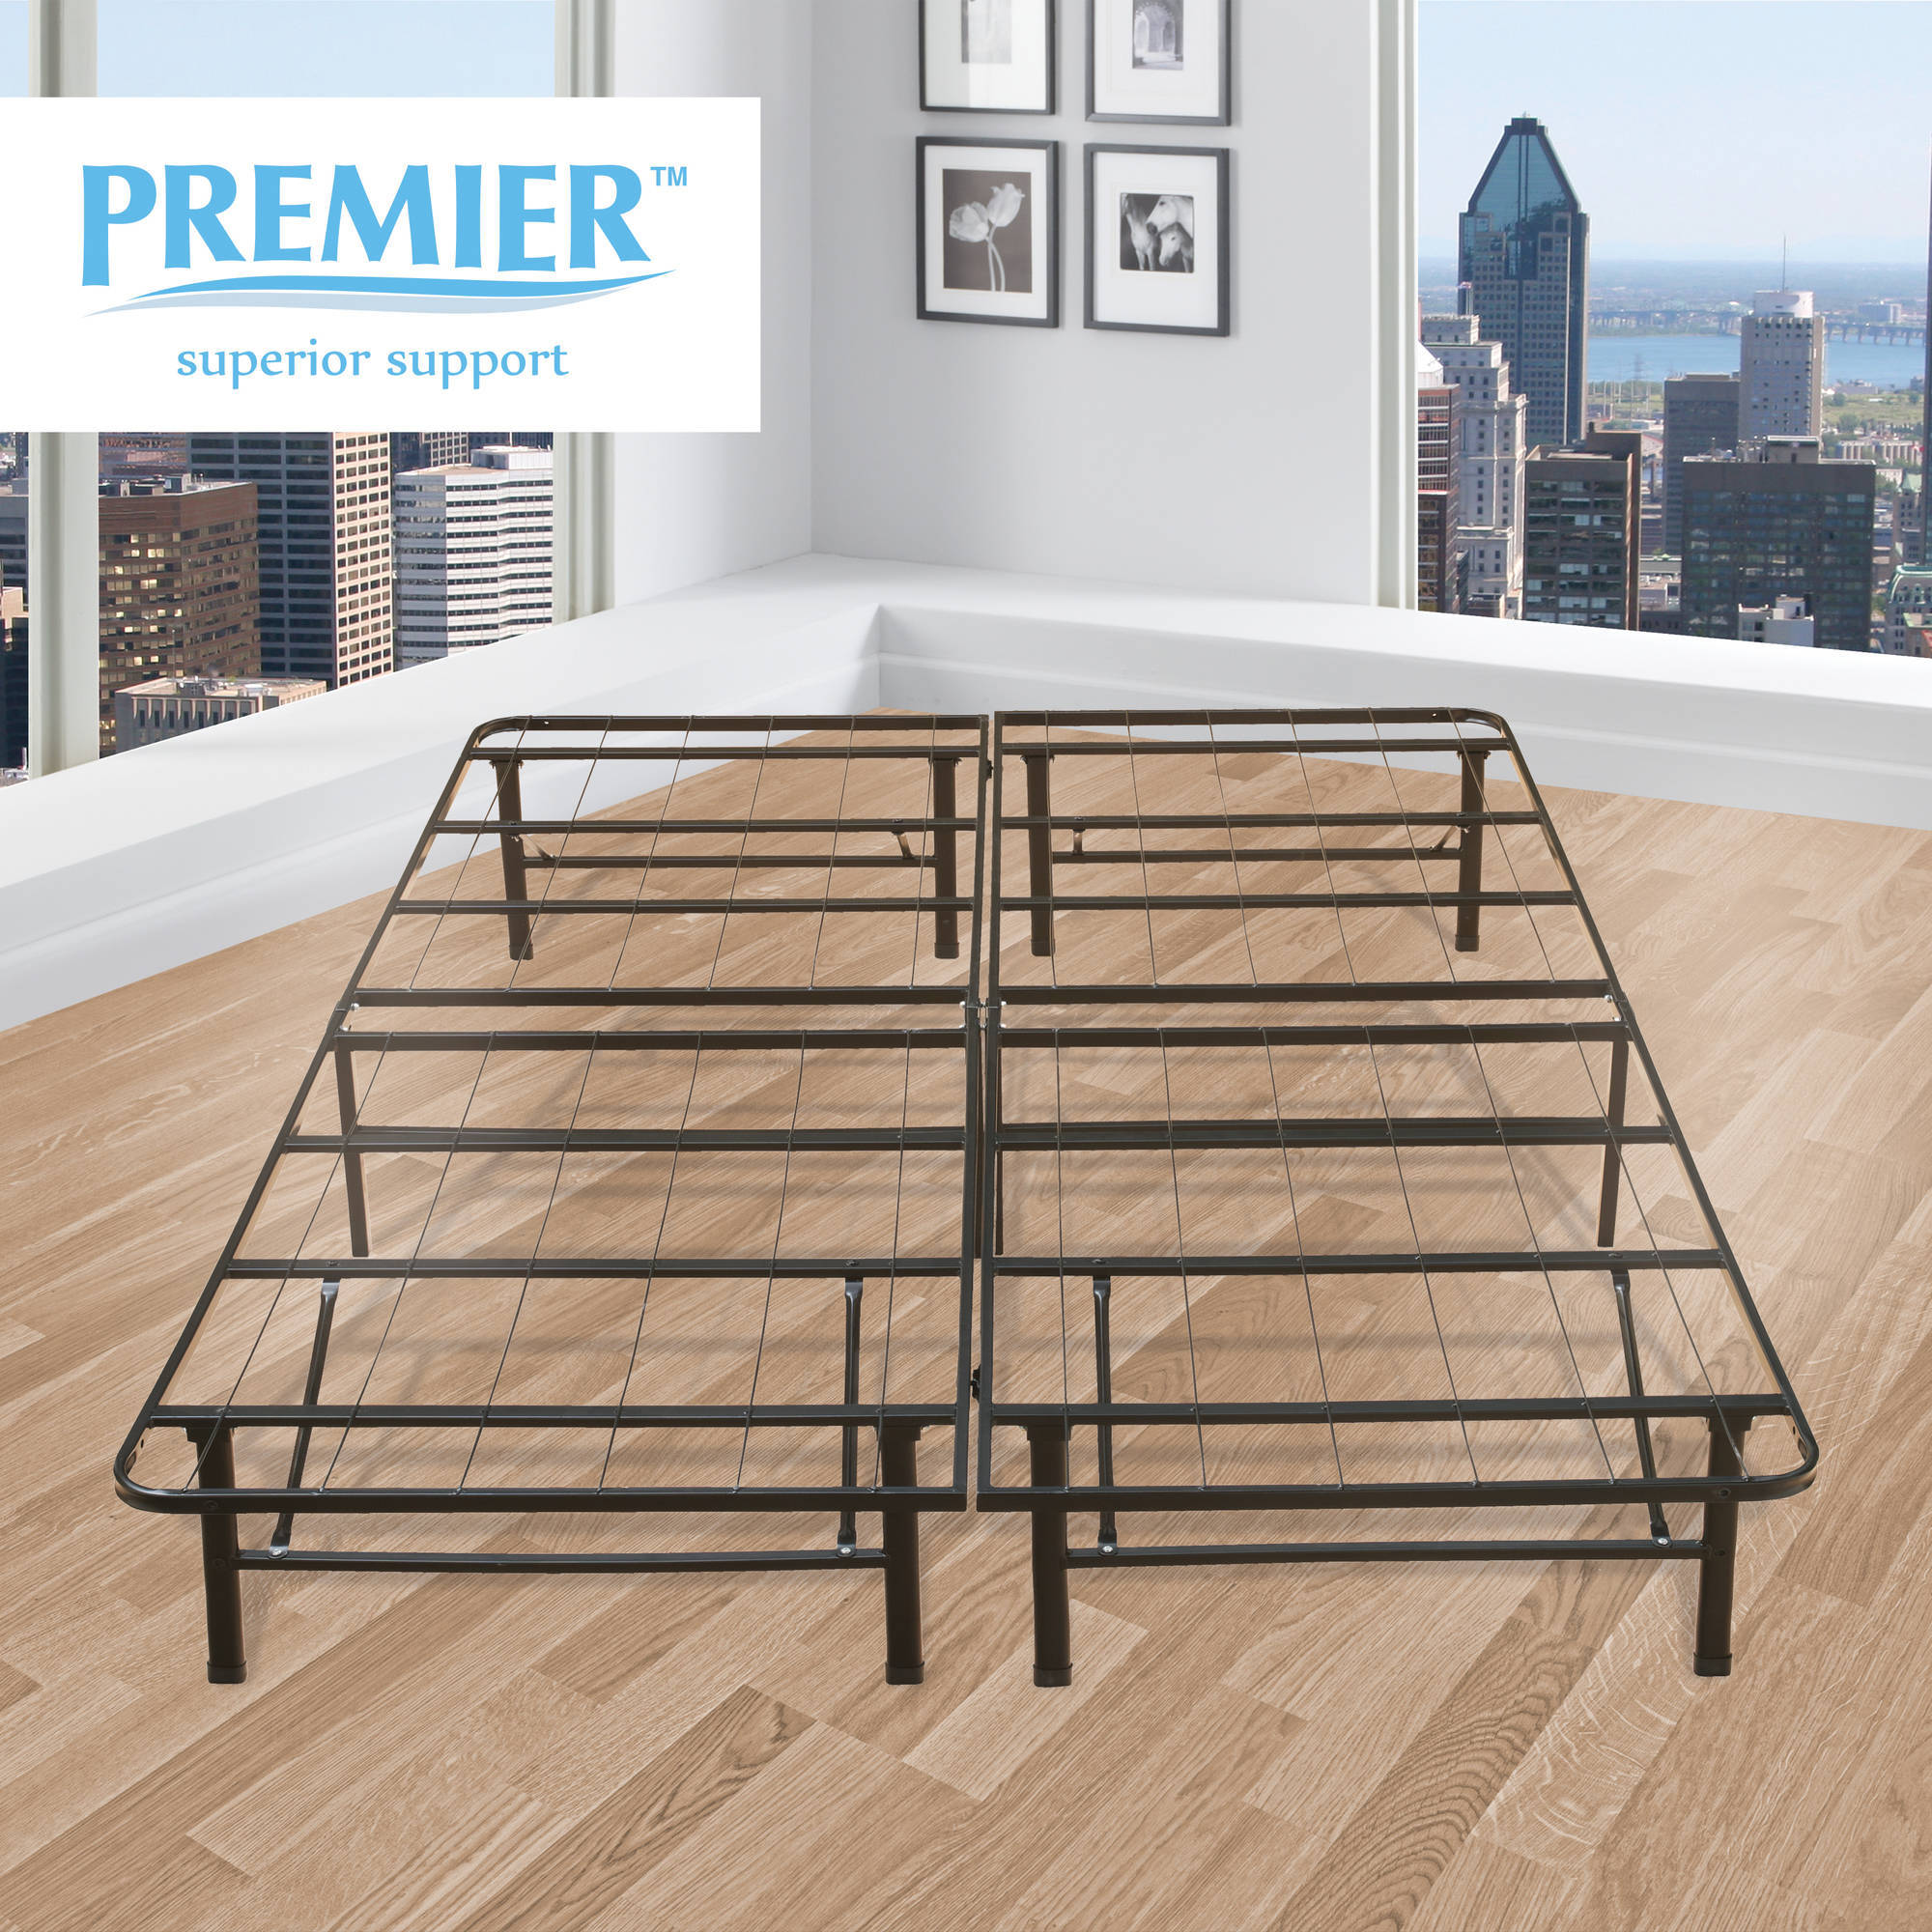 premier platform 14 metal base foundation bed frame multiple sizes